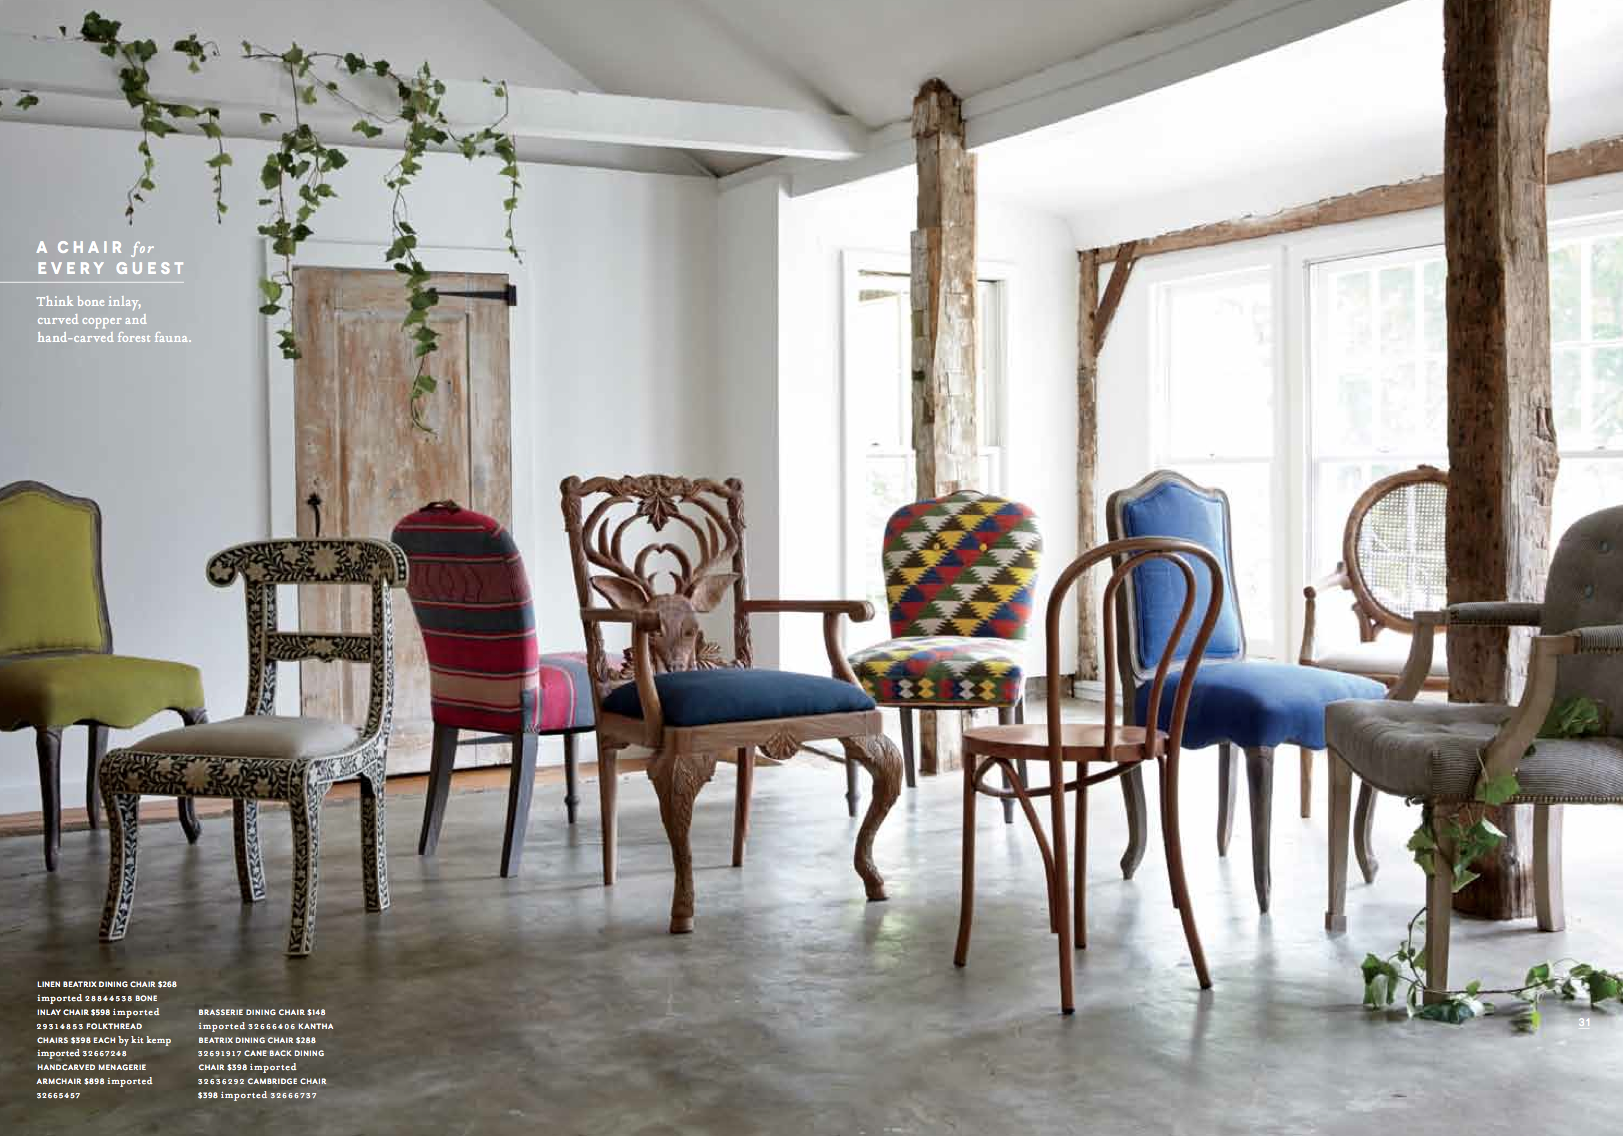 anthropologie house and home photo shoot with simon watson and county fair productions 19